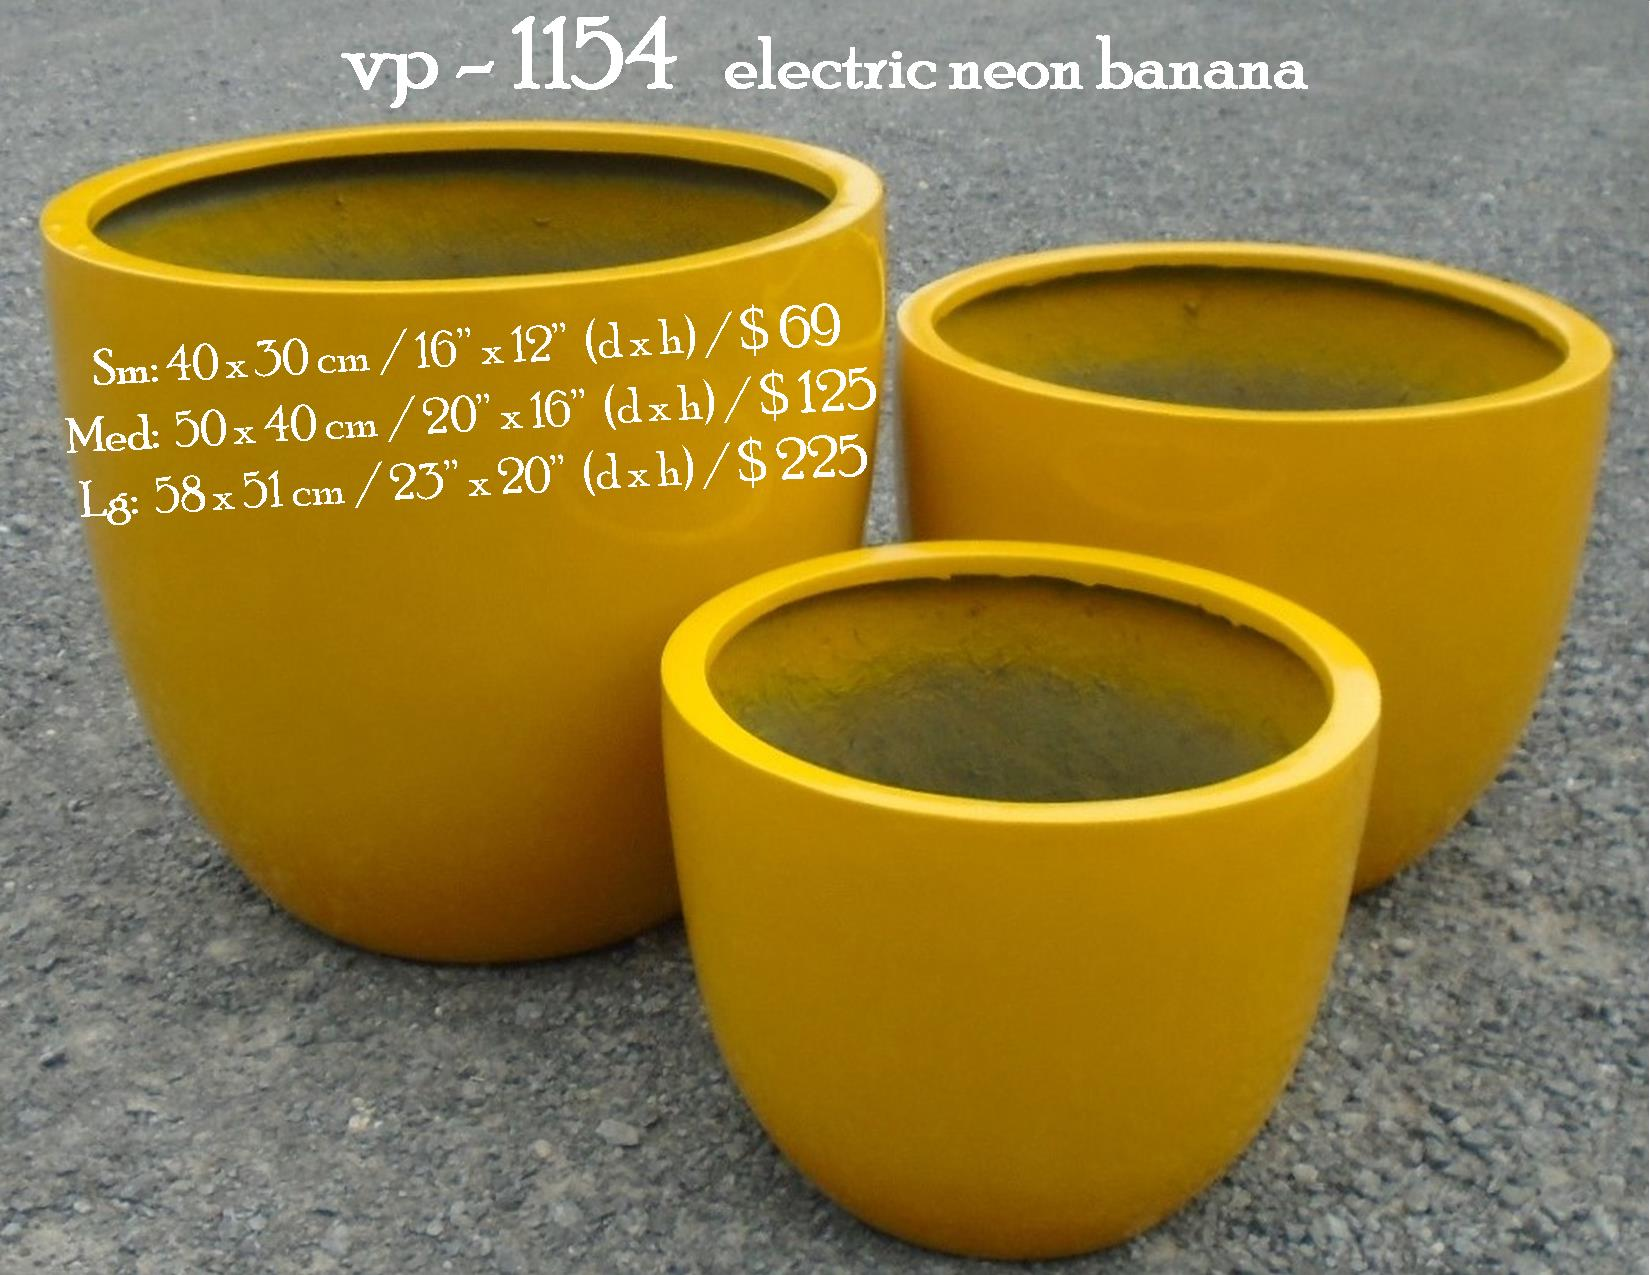 vp - 1154   electric neon banana